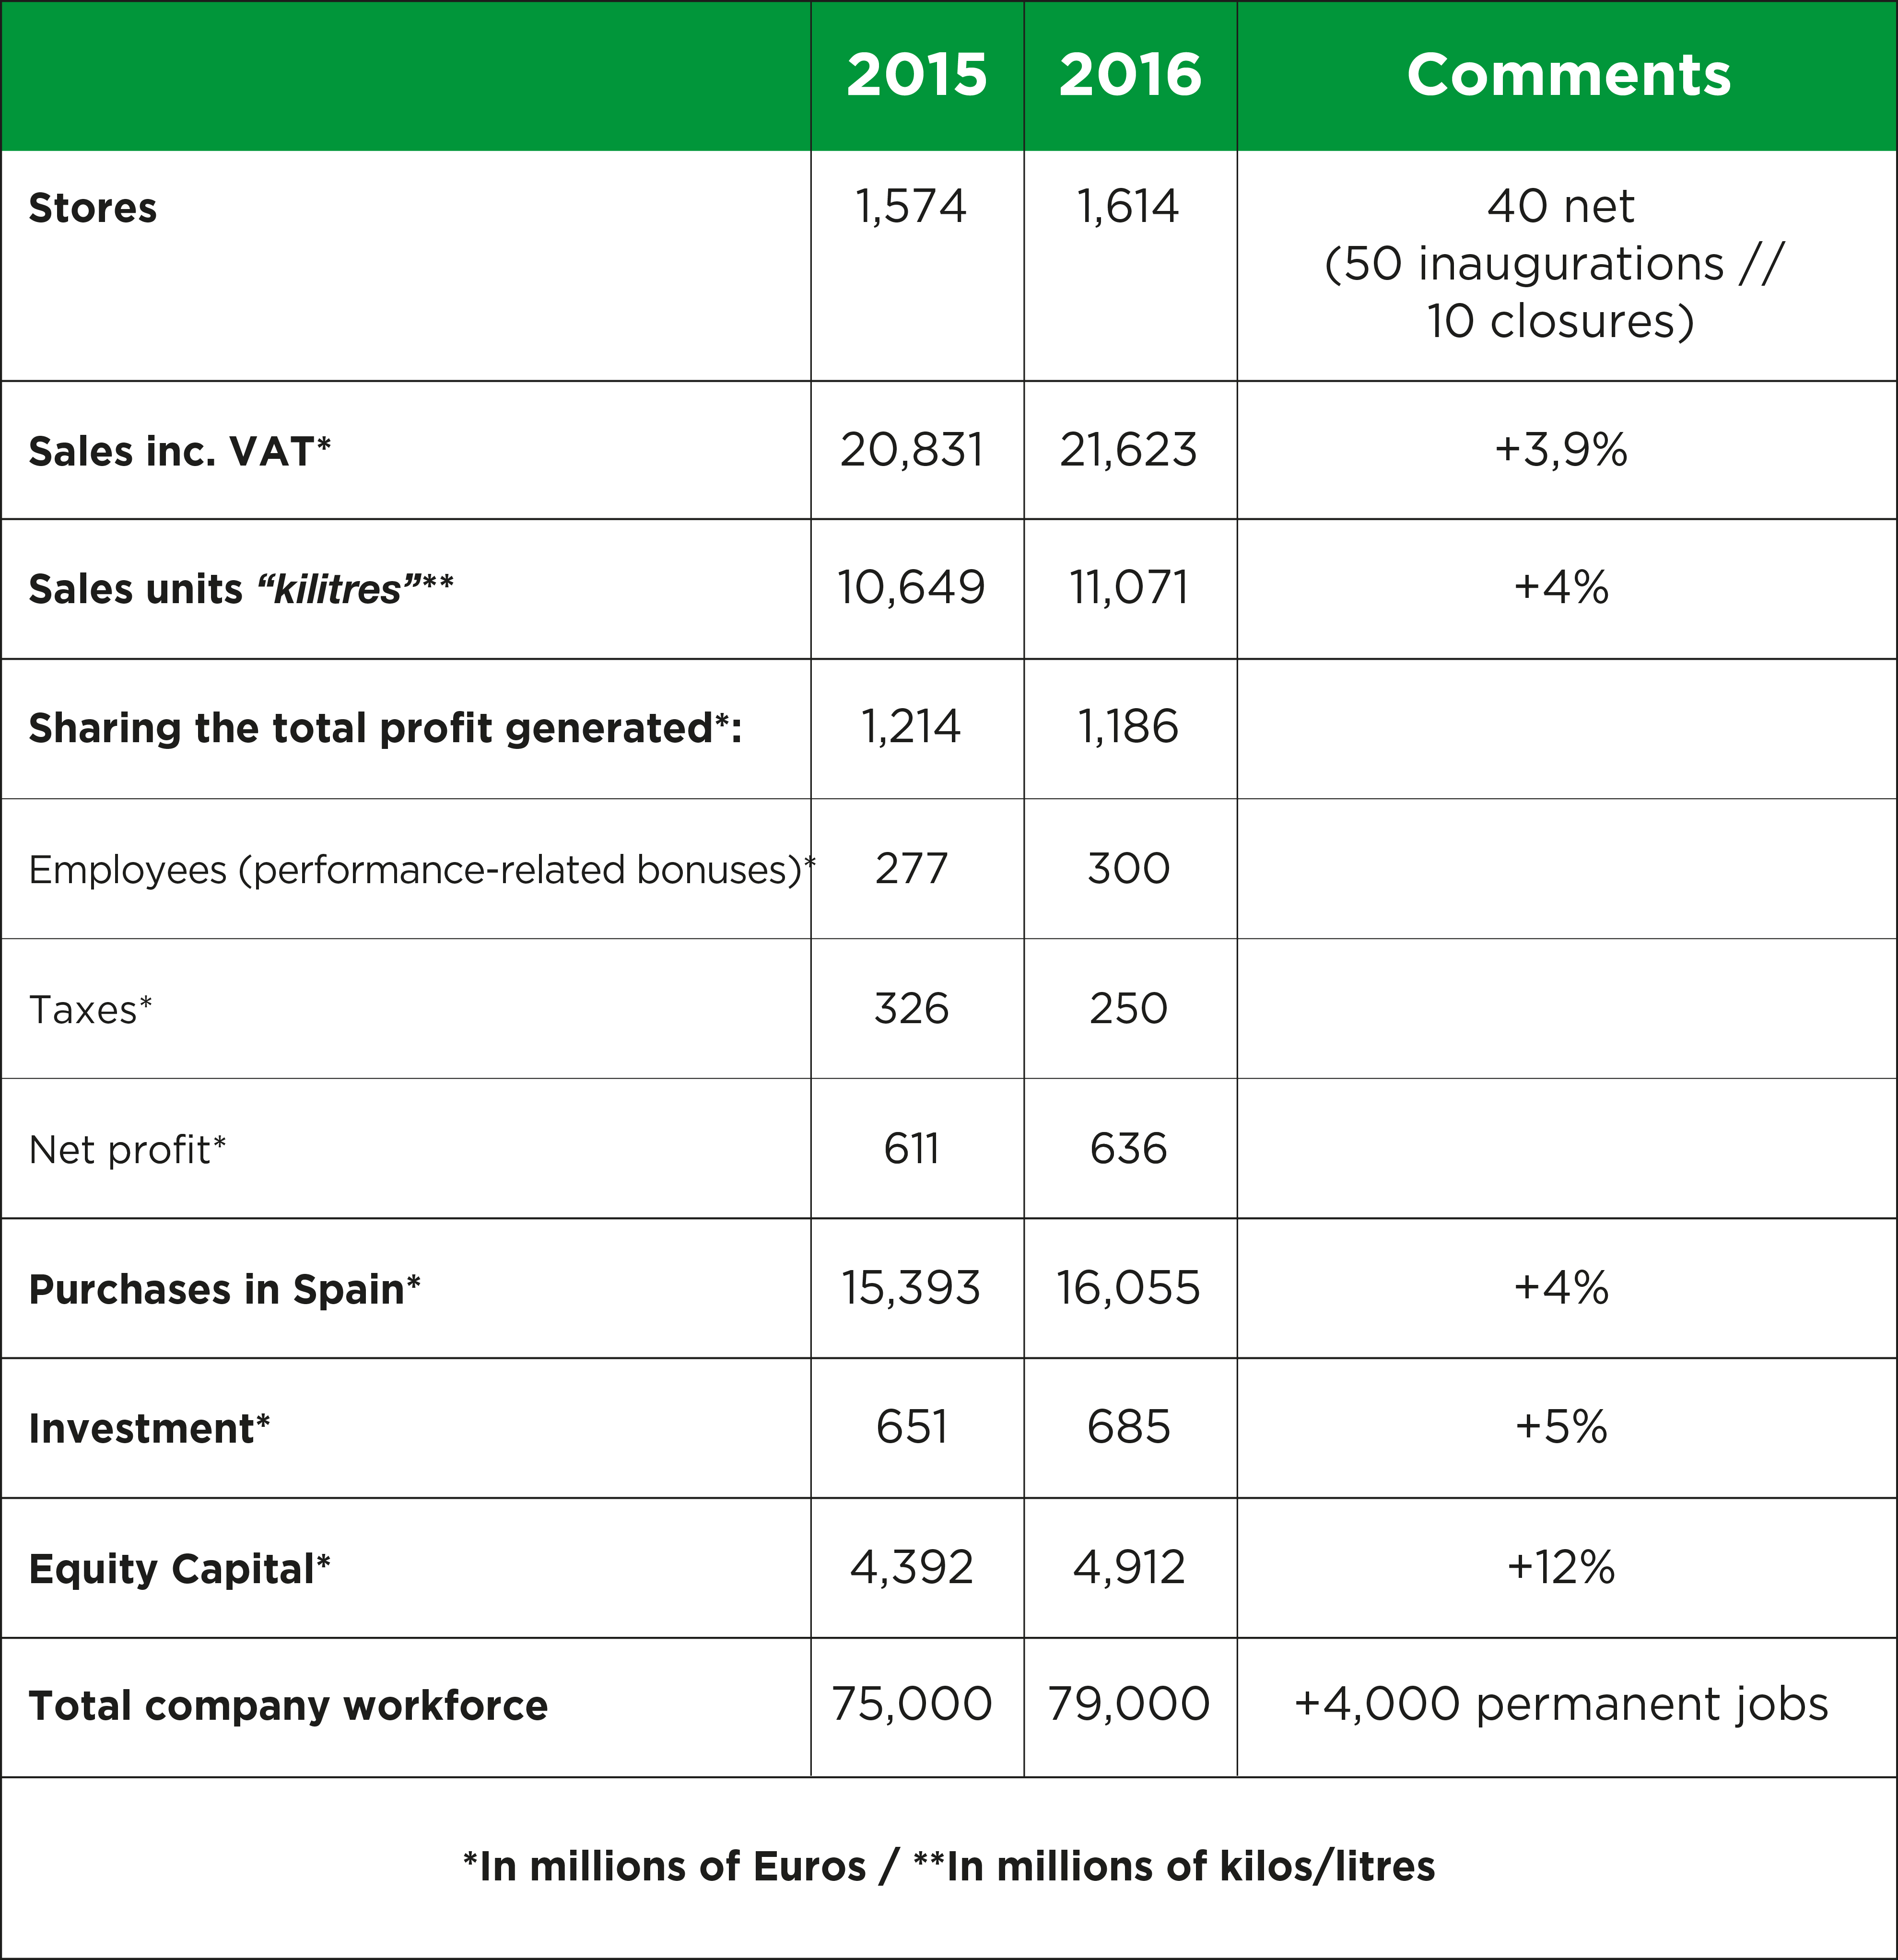 MERCADONA: SOME SIGNIFICANT ACHIEVEMENTS OF 2016